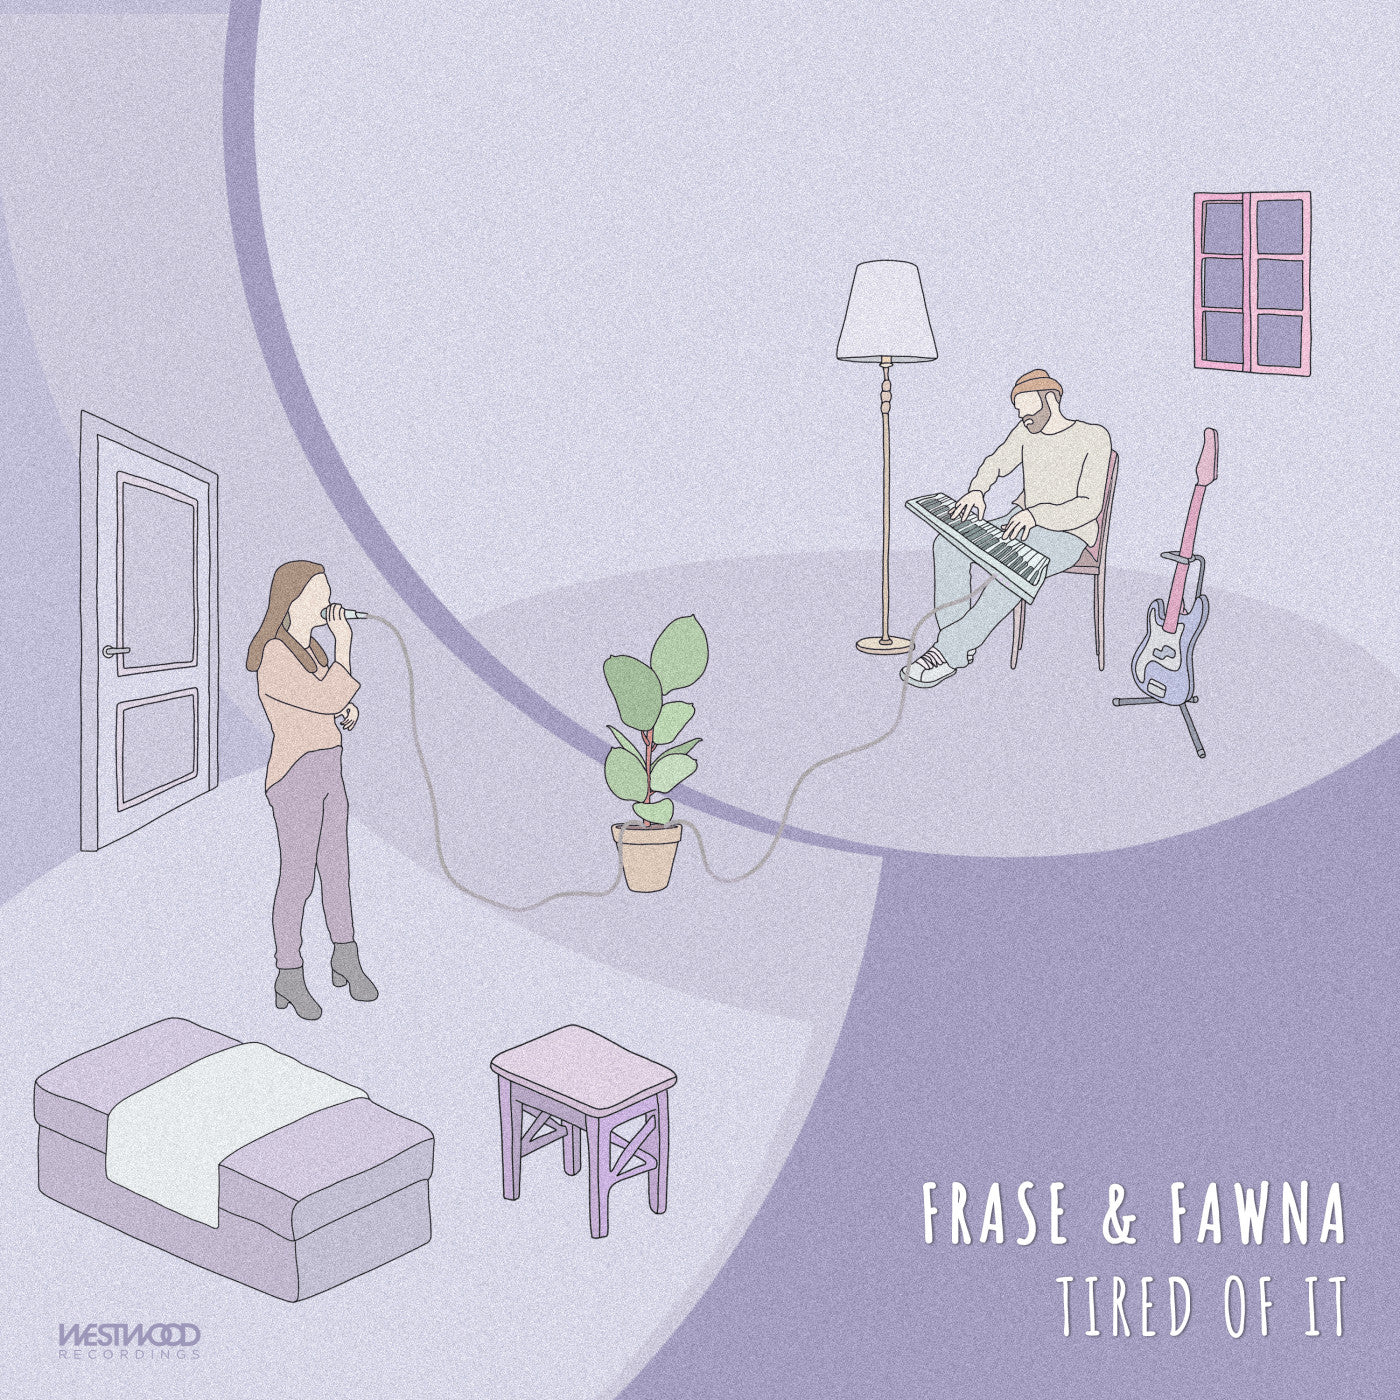 Frase & Fawna - Tired Of It